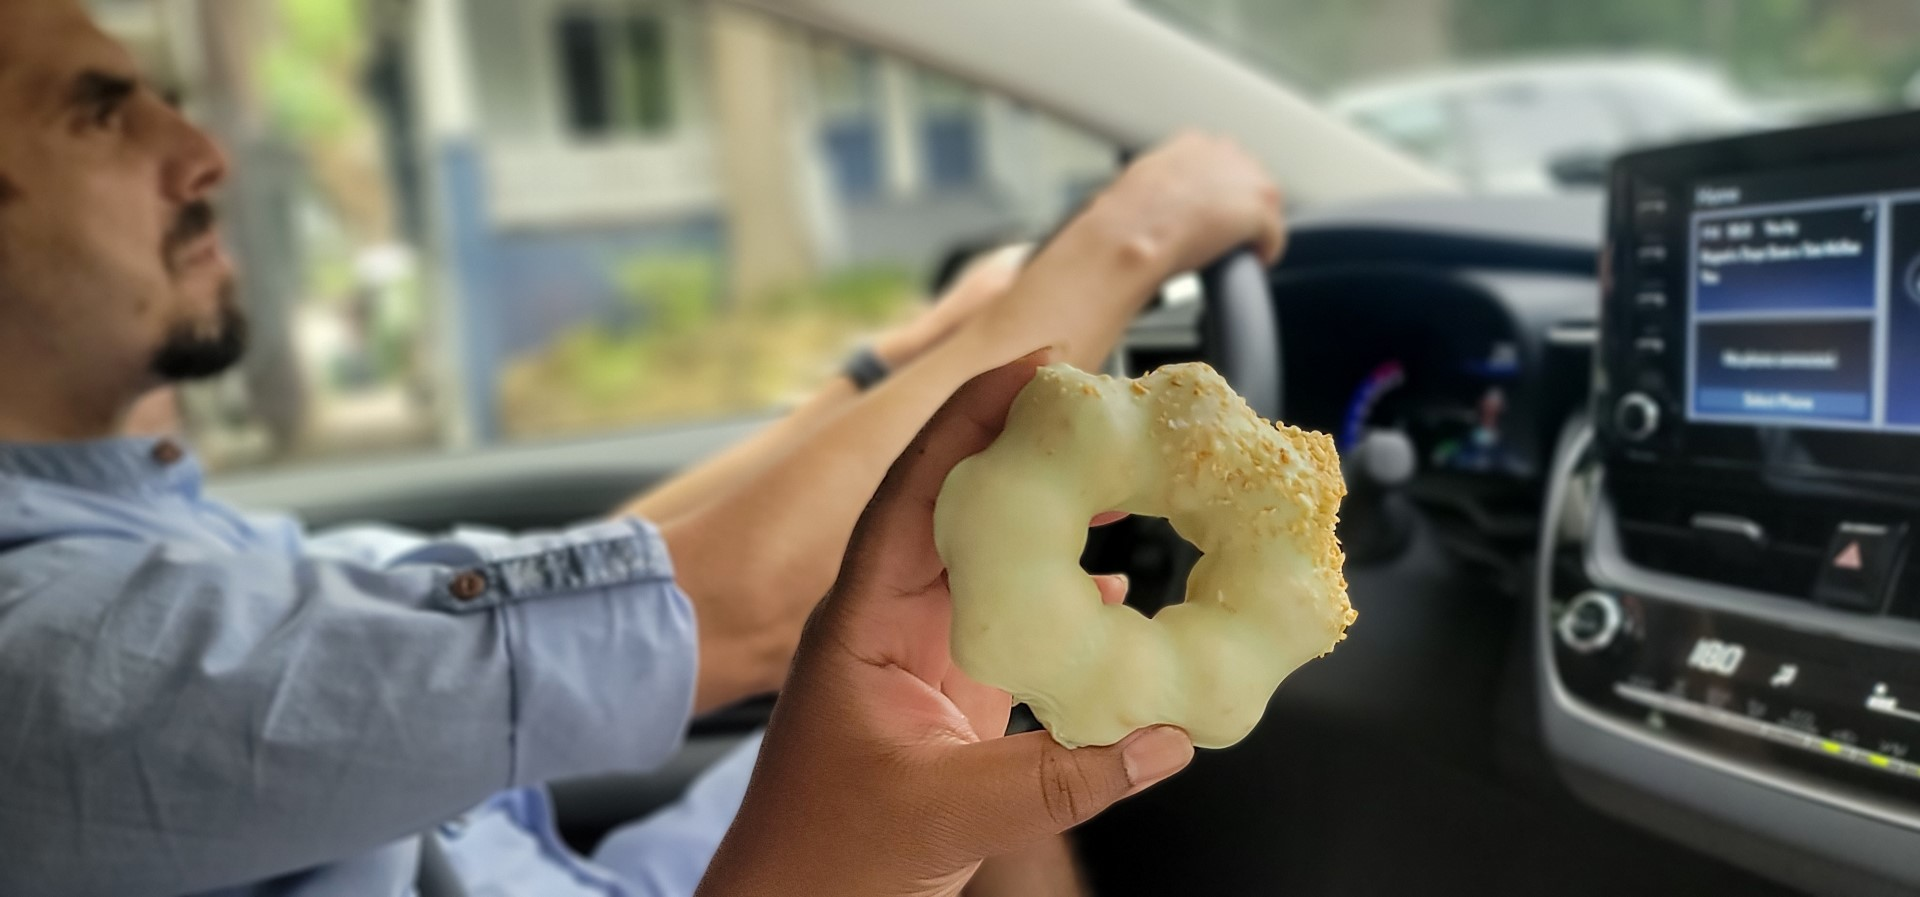 mochi donut in hand with another hand holding steering wheel